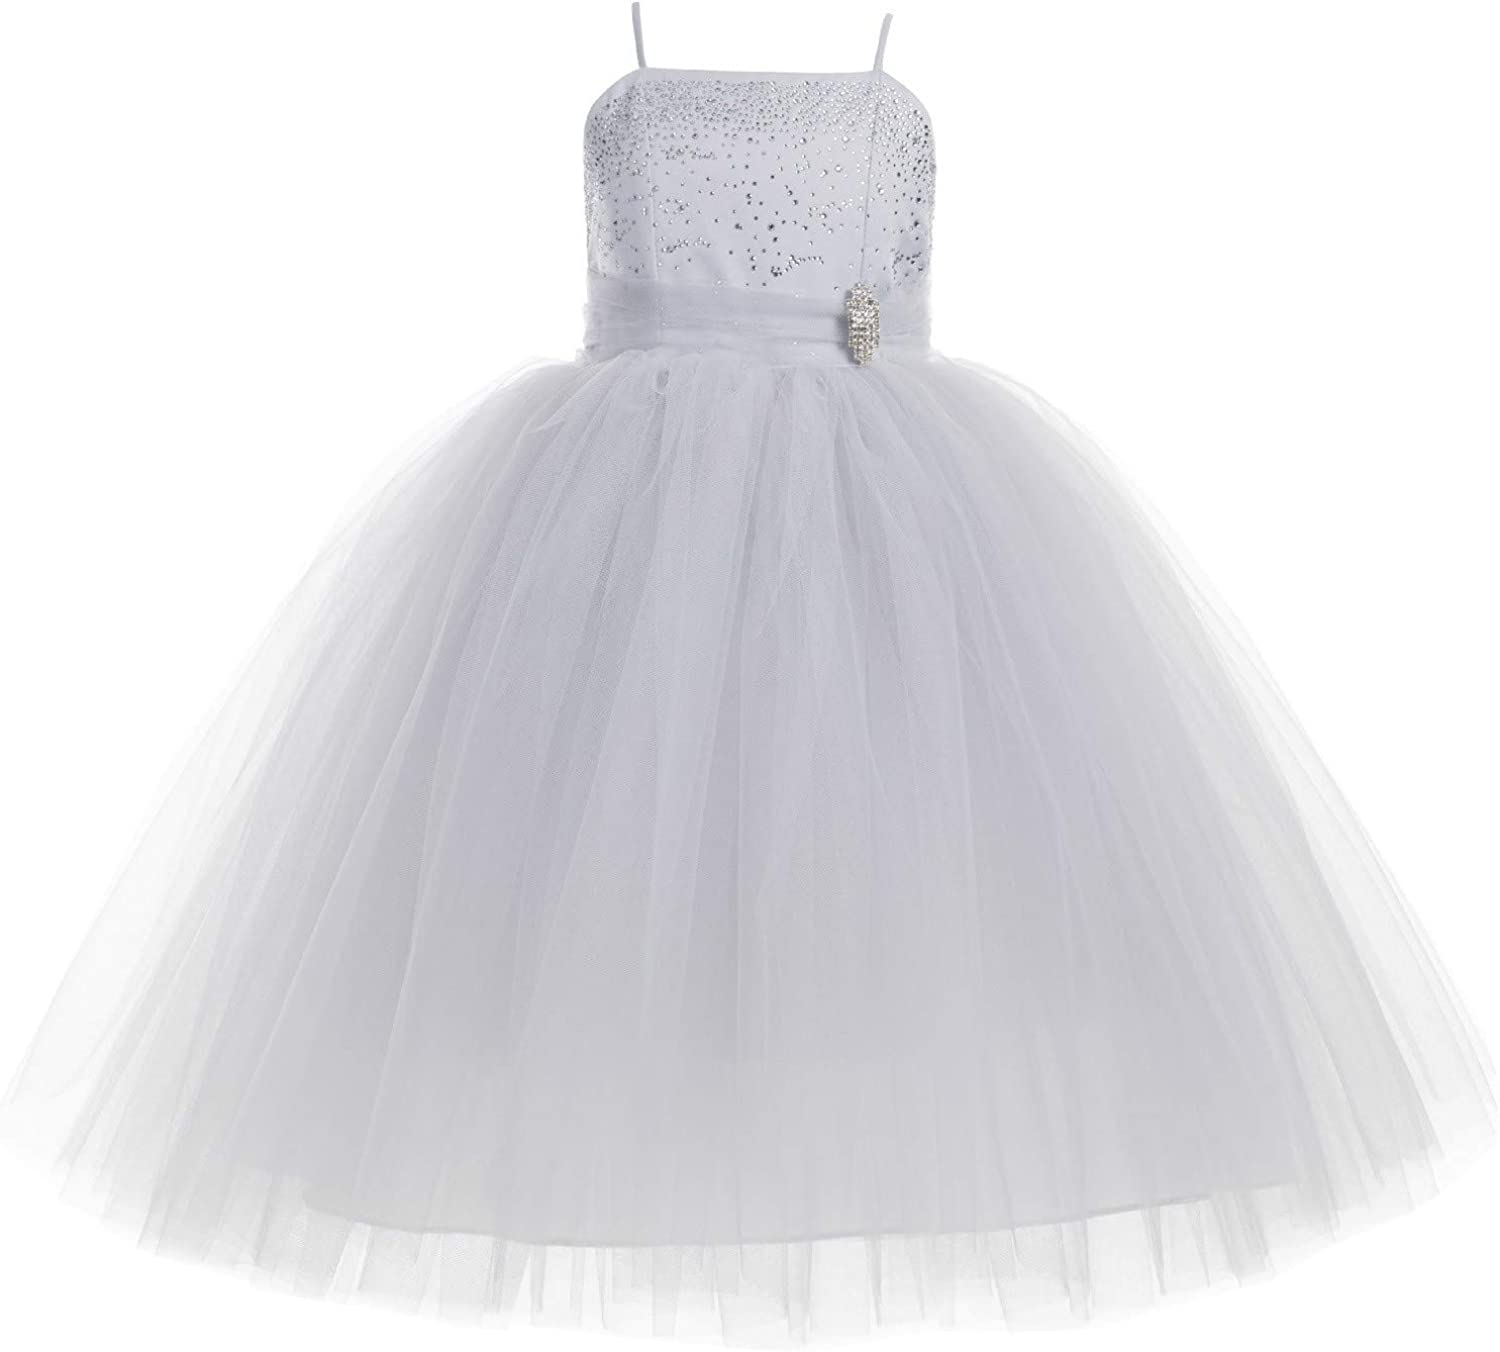 Online Max 61% OFF limited product Rhinestone Tulle Tutu Flower Girl D Ball Gown Dress Toddler